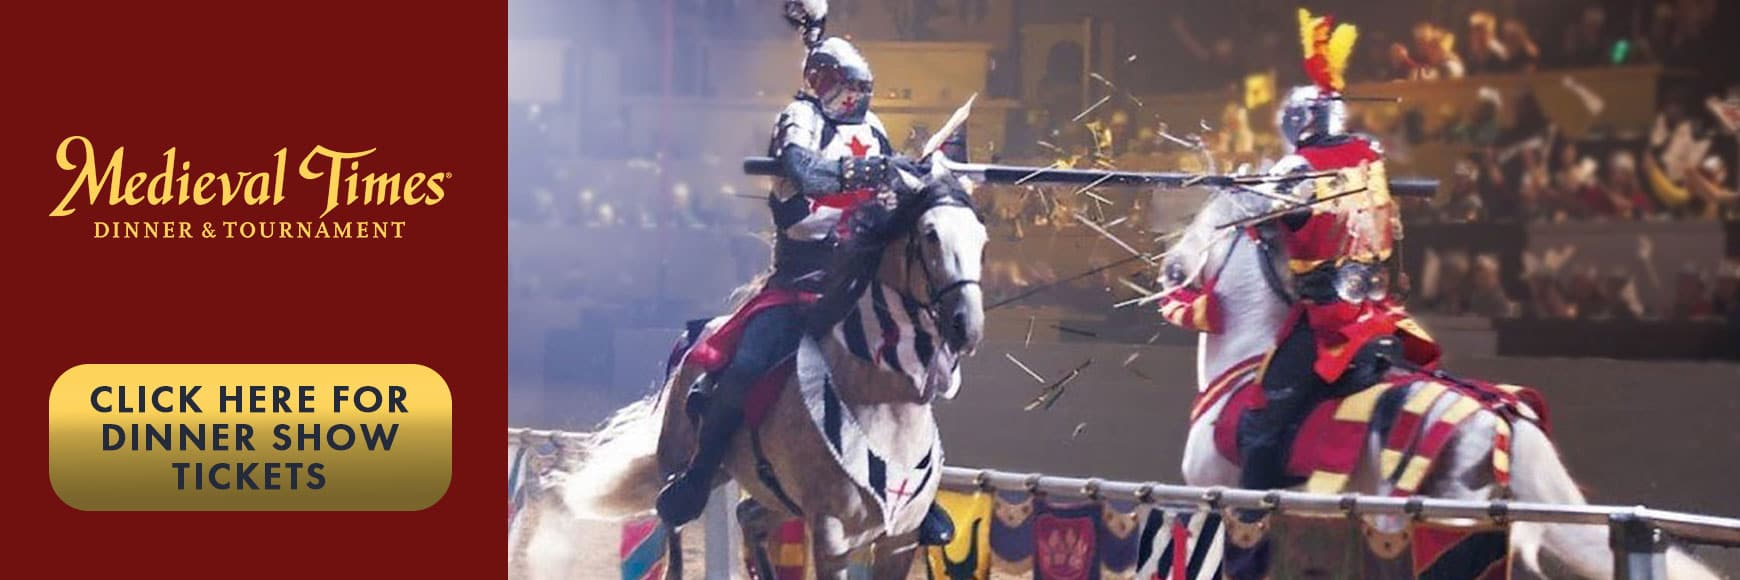 Medieval Times Dinner Show Tickets